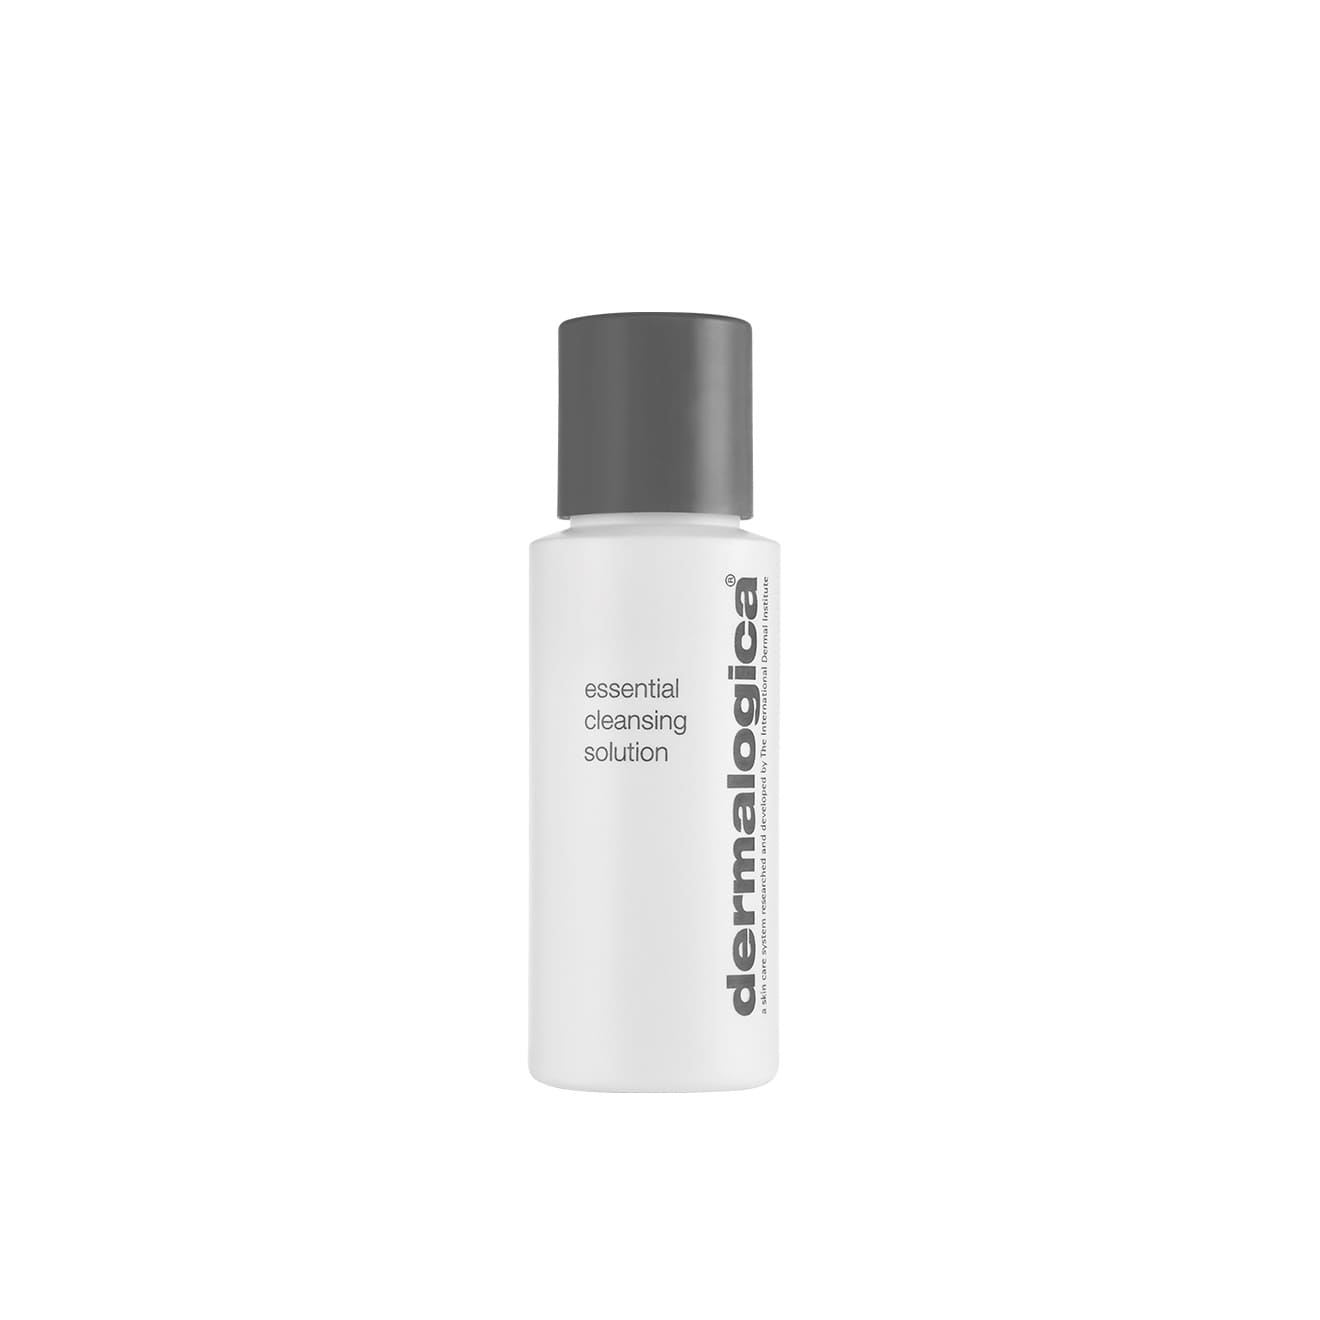 Crème Nettoyante Onctueuse - Essential Cleansing Solution 50ml Dermalogica